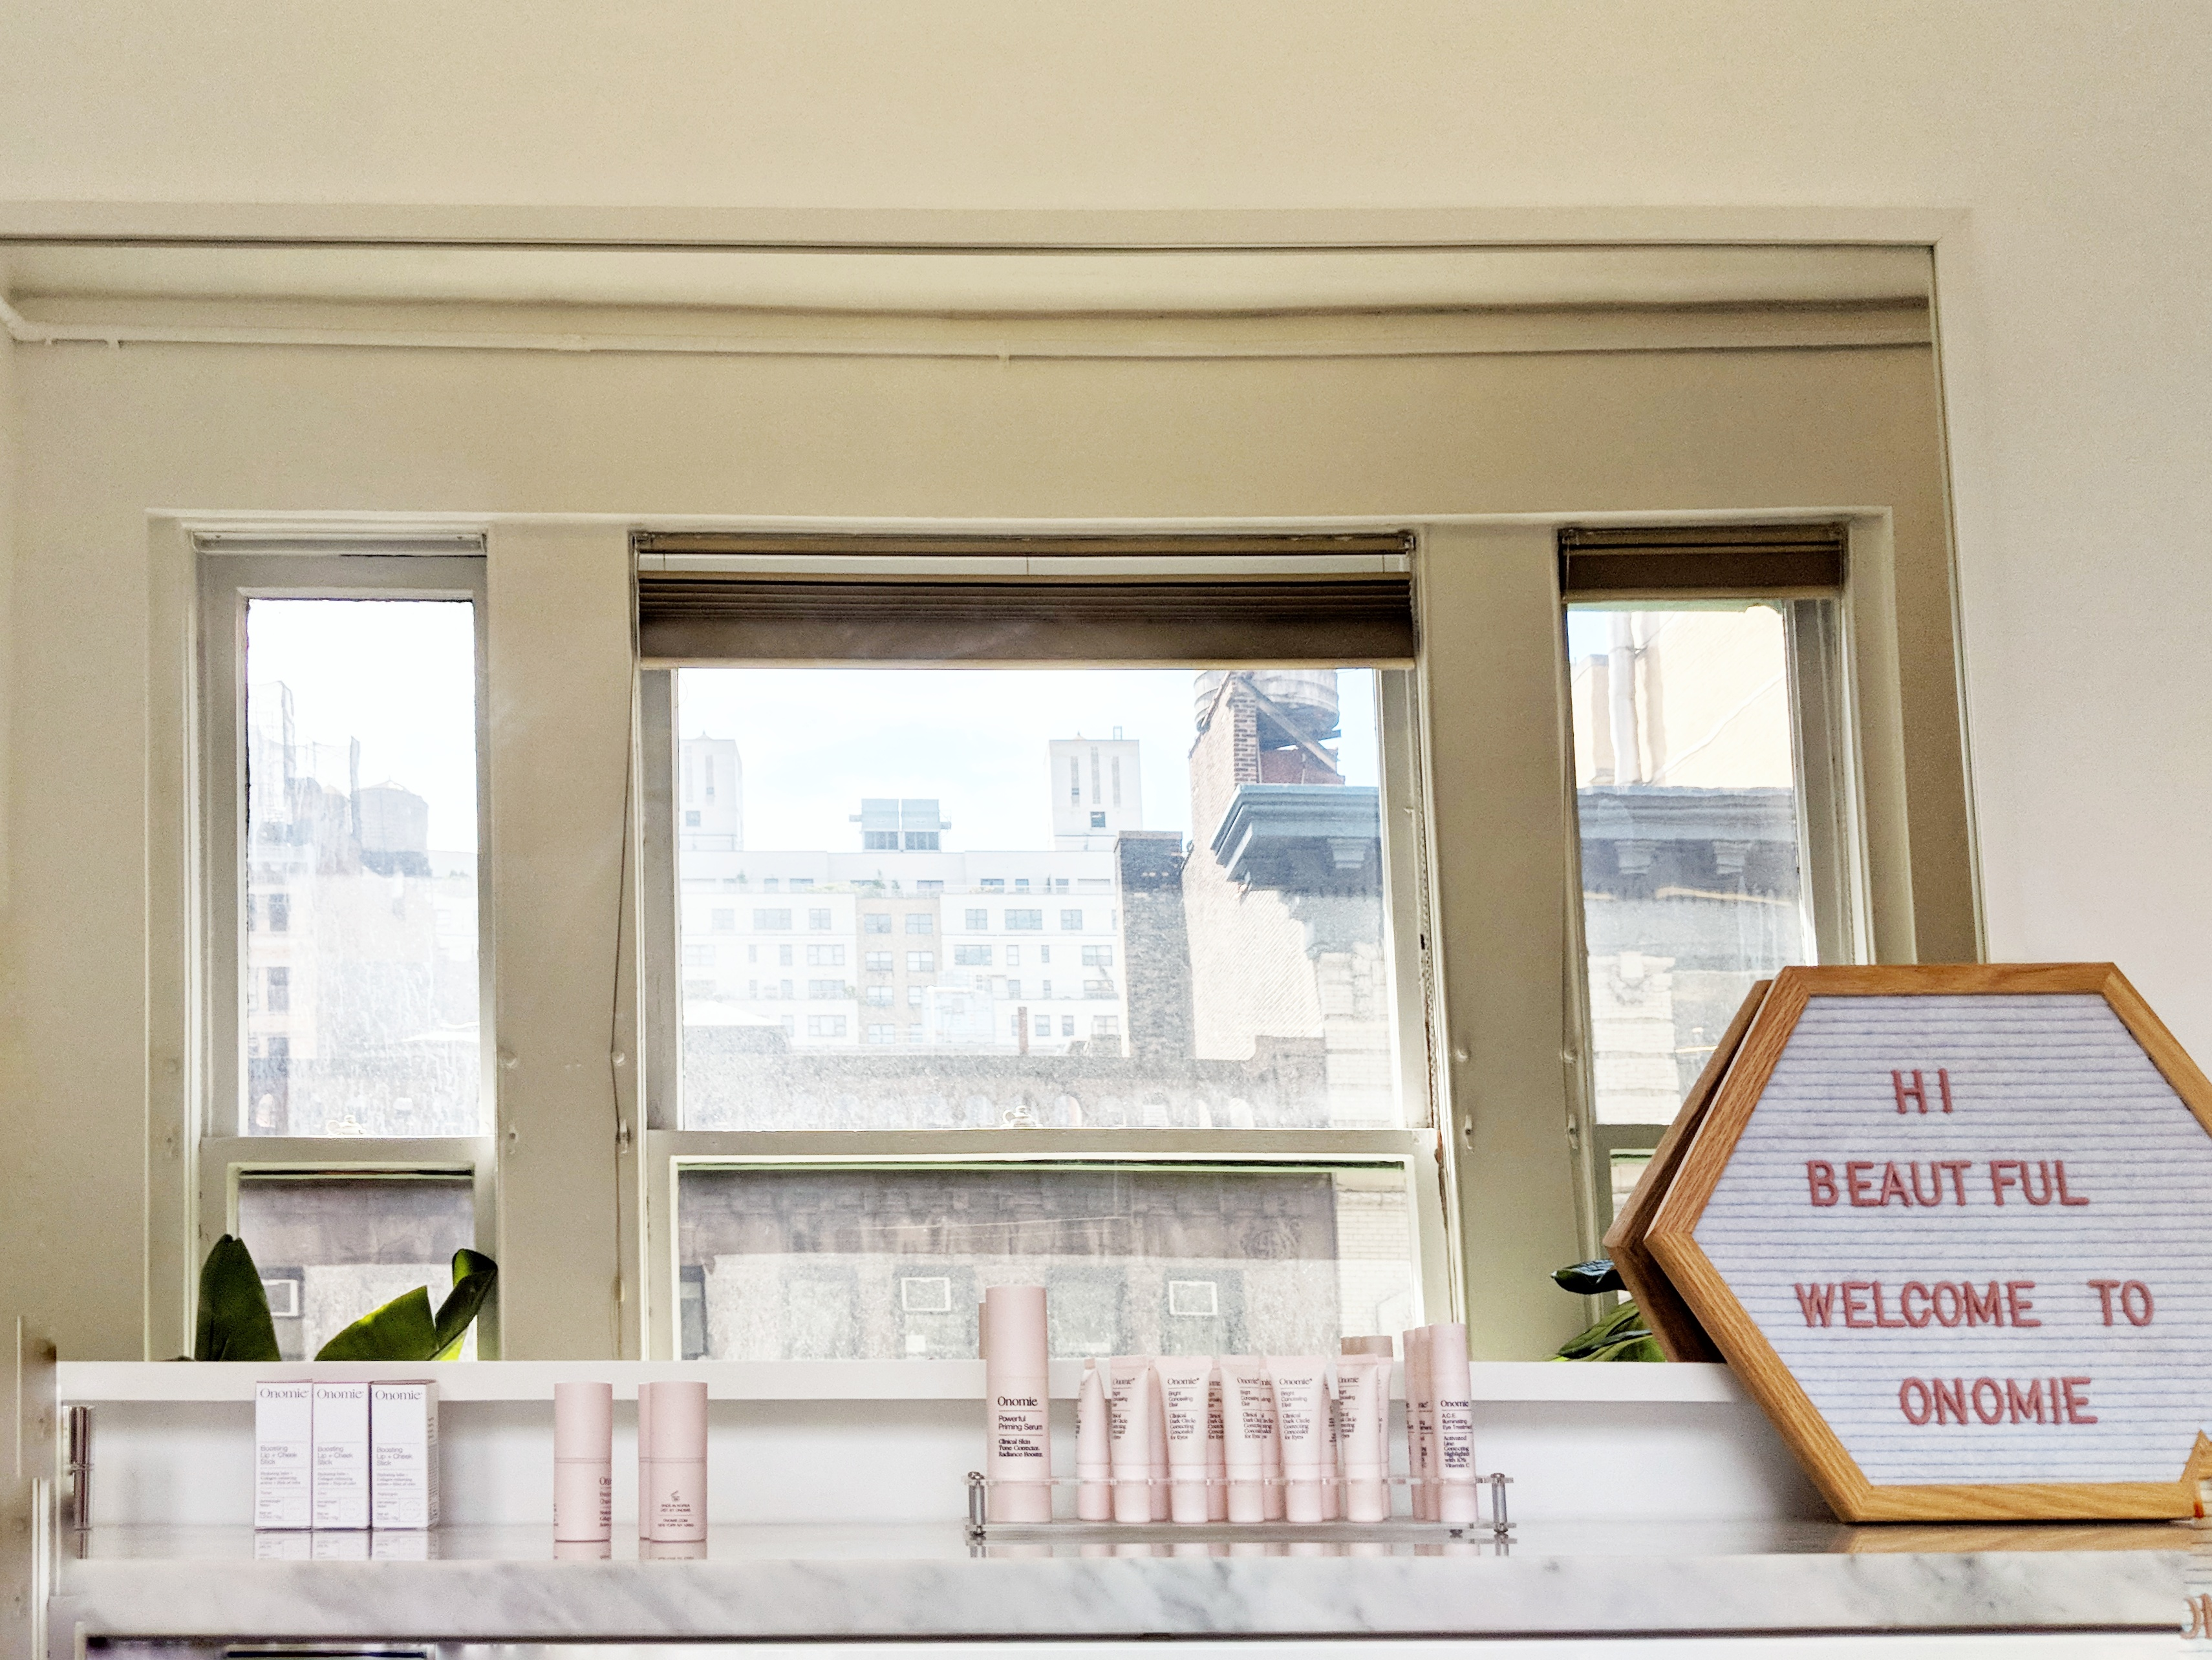 NYC Beauty Shopping Guide - Onomie